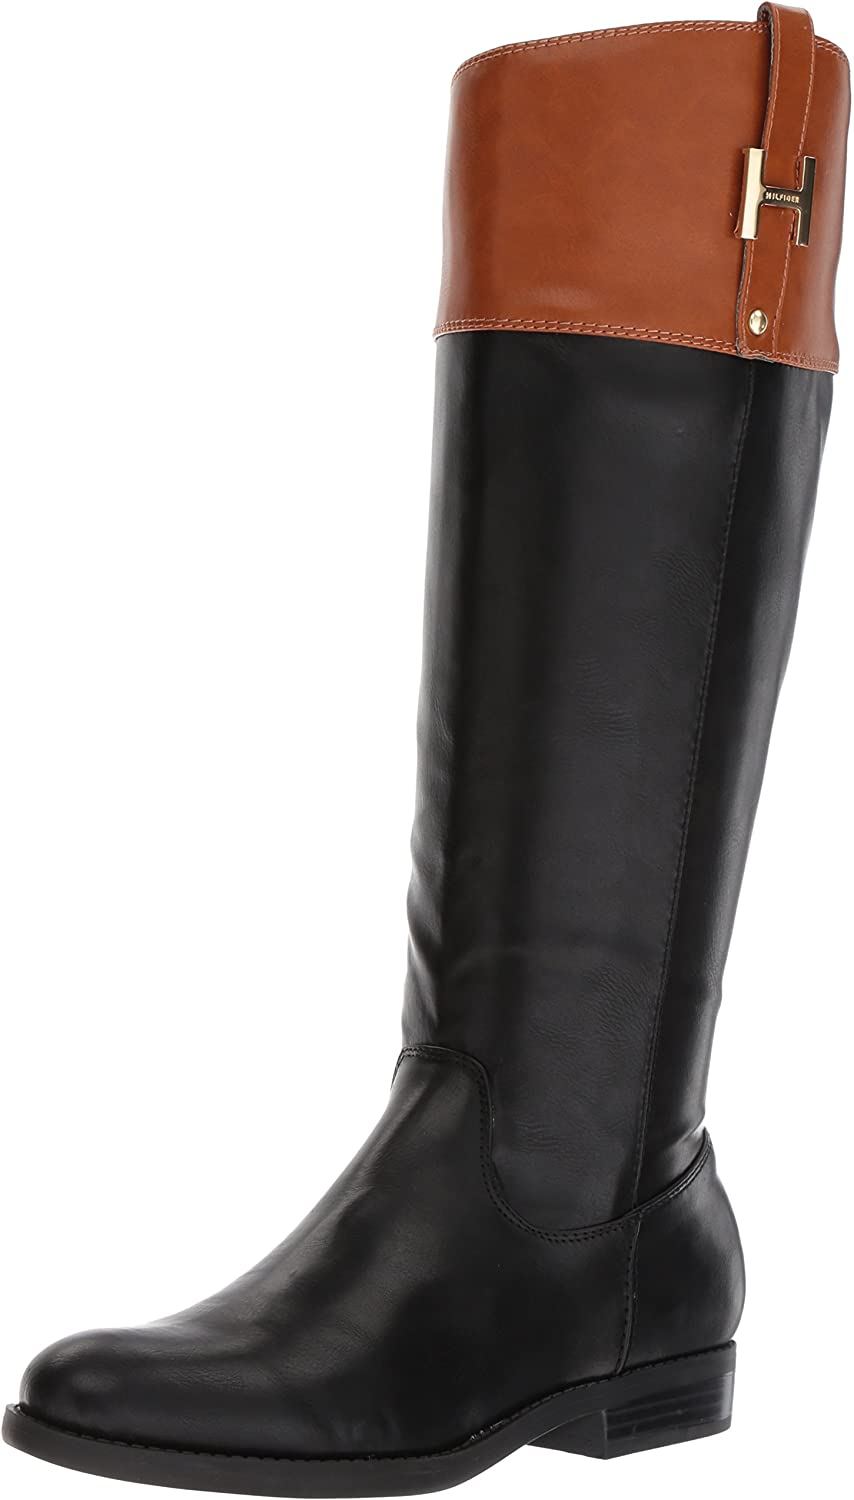 Mail order cheap Tommy Hilfiger Women's Boot Equestrian SHYENNE Max 65% OFF